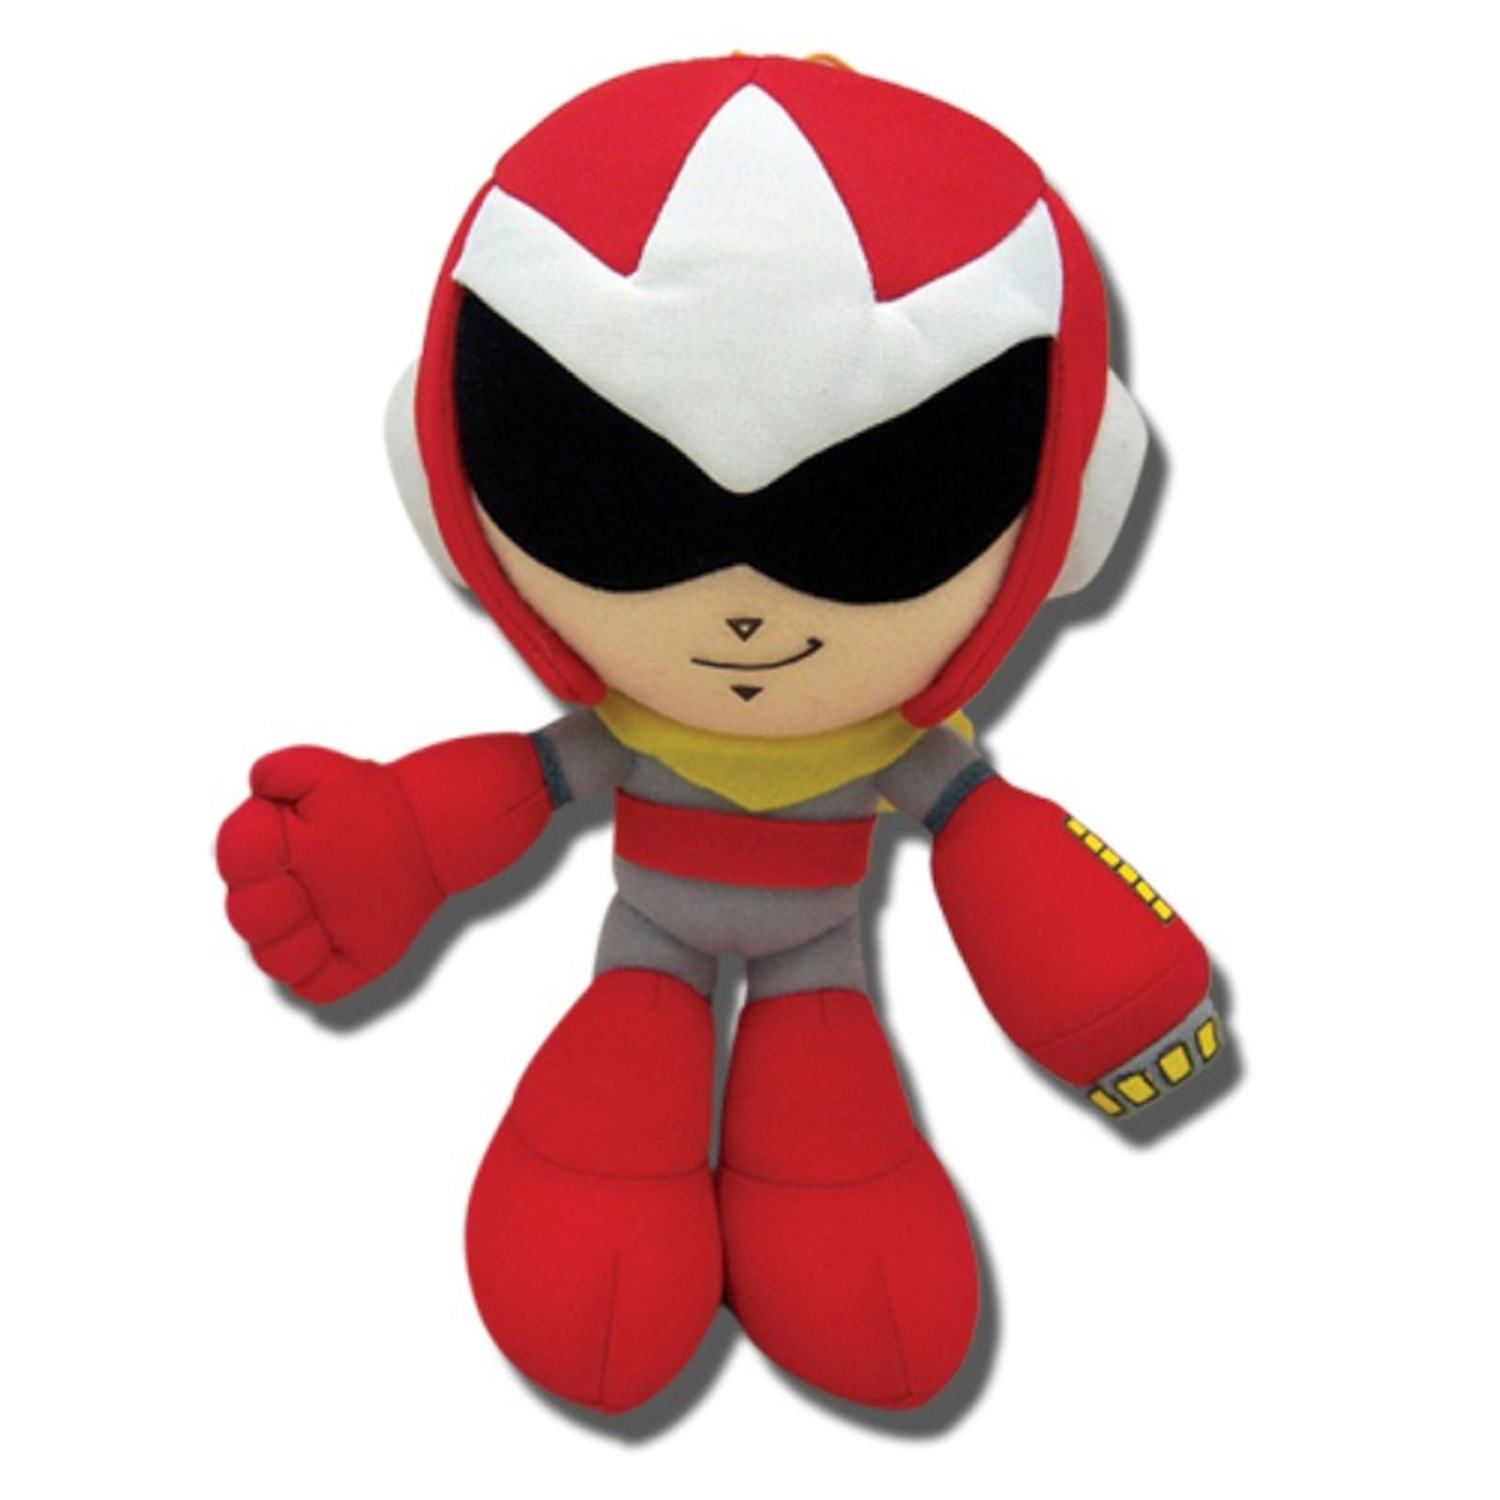 "Capcom Mega Man Proto Man Plush Toy, 9"" (Christmas Gift Idea)"